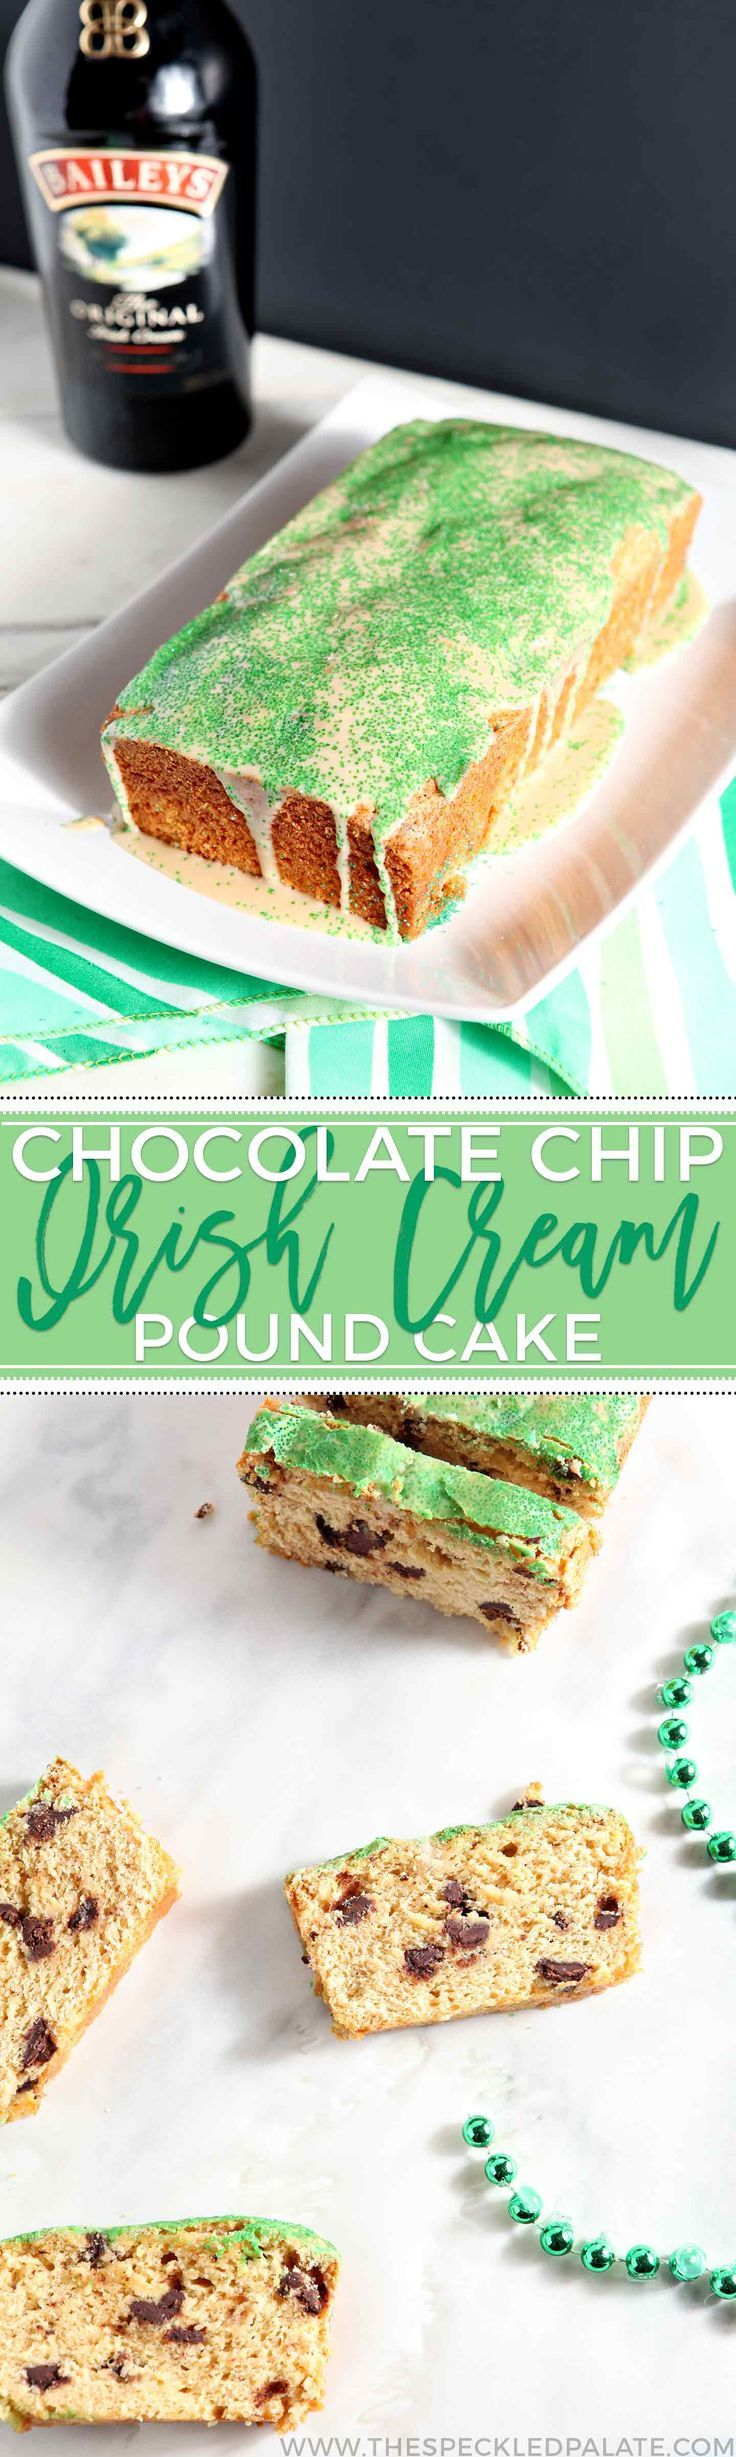 Show up to this year's St. Patrick's Day festivities or BRUNCH with a Chocolate Chip Irish Cream Pound Cake! This decadent cake, made with a large pour of Bailey's Irish Cream, is studded with dark chocolate chips. Dense and moist with a fluffy interior a